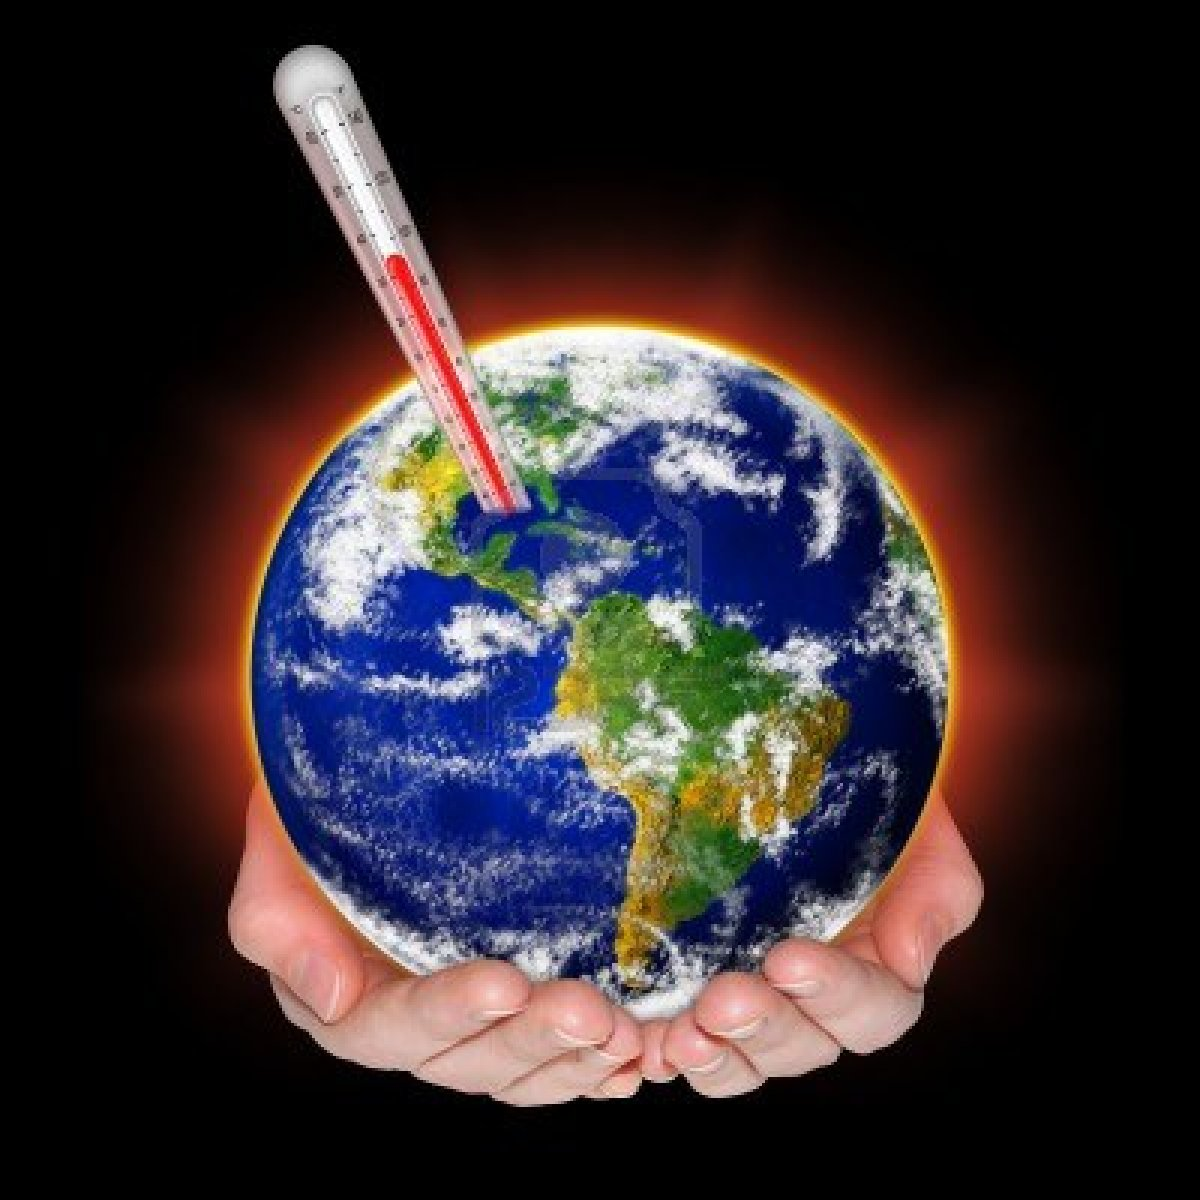 global warmimg 09102018 the latest articles and facts about global warming and its causes, plus a look at the effects of climate change: rising sea level and severe weather.